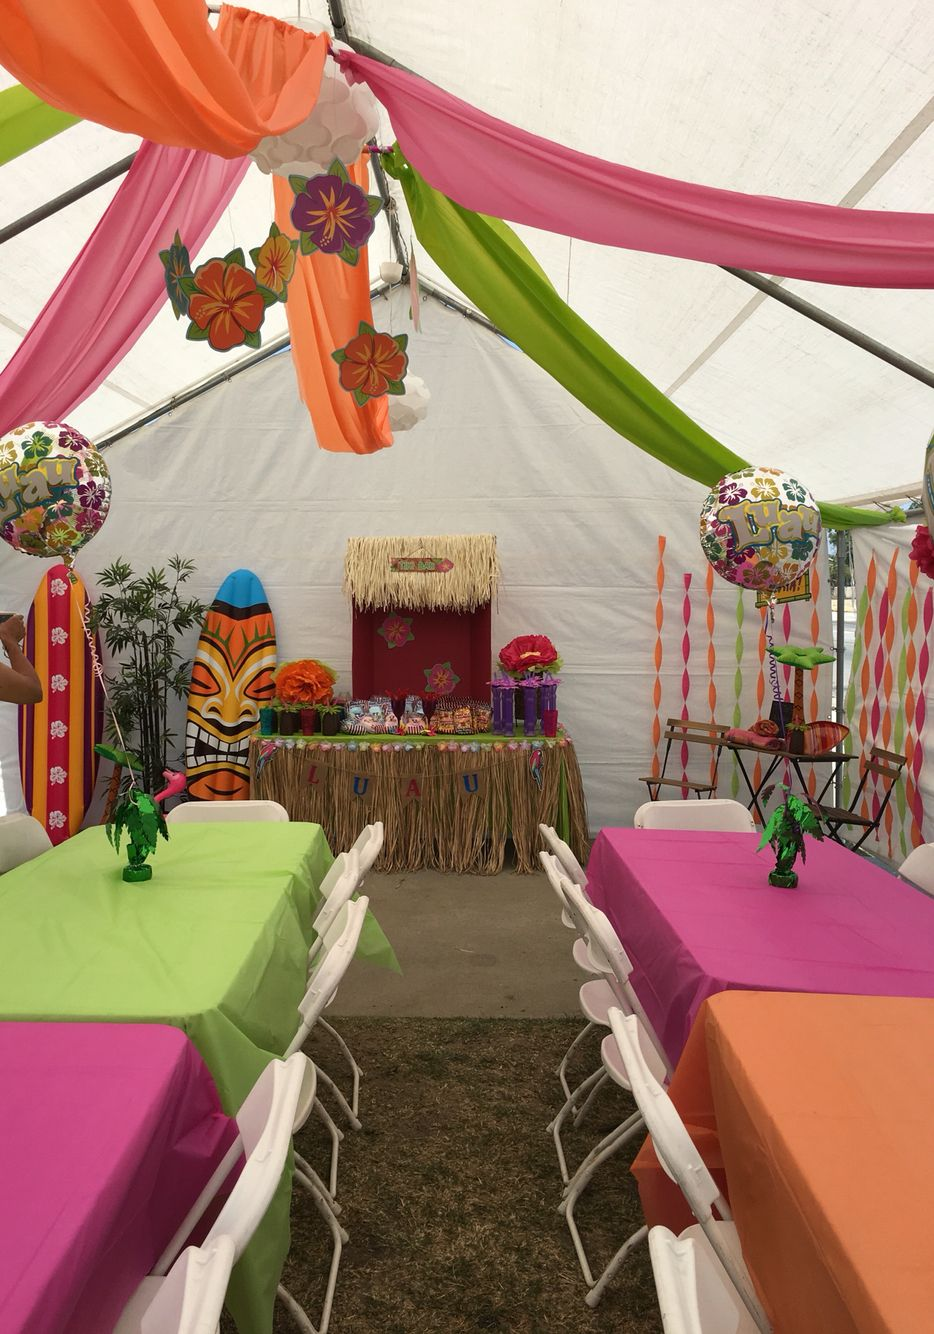 diy budget decorations for a luau theme party great way to decorate your outdoor canopy decorations can be found at your local party supply store or you - Orange Canopy Decorating